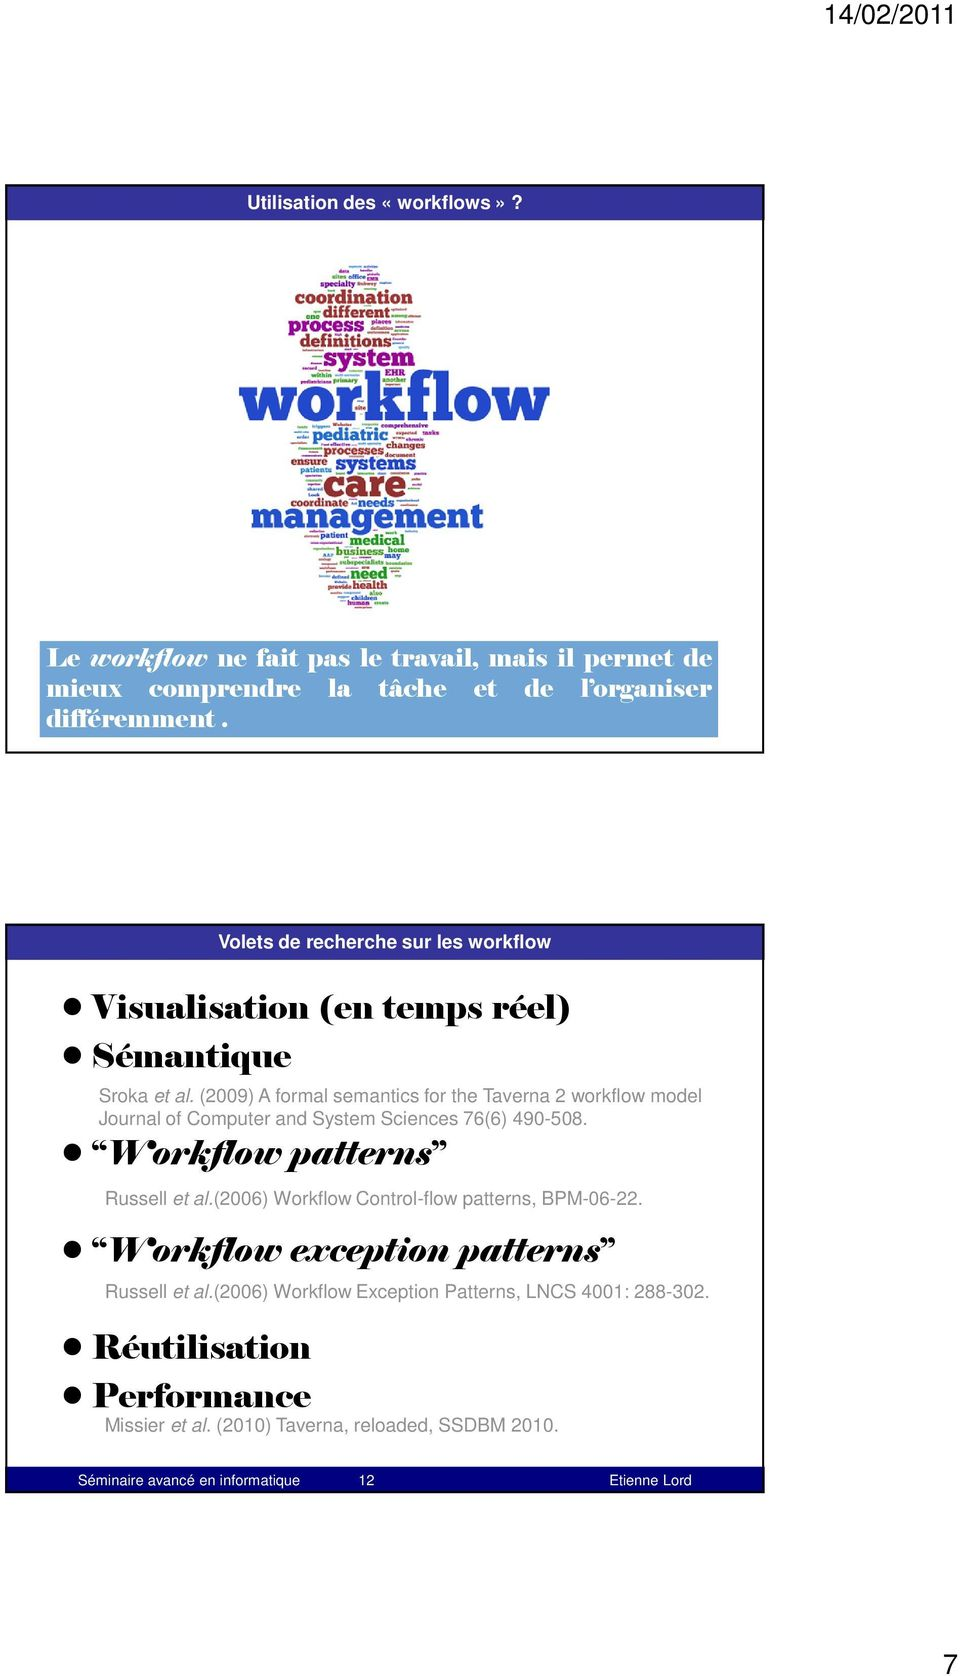 Primary Care EMR Workflow Systems: Key Ideas By CHUCKWEBSTER Published: NOVEMBER 17, 2009 différemment.